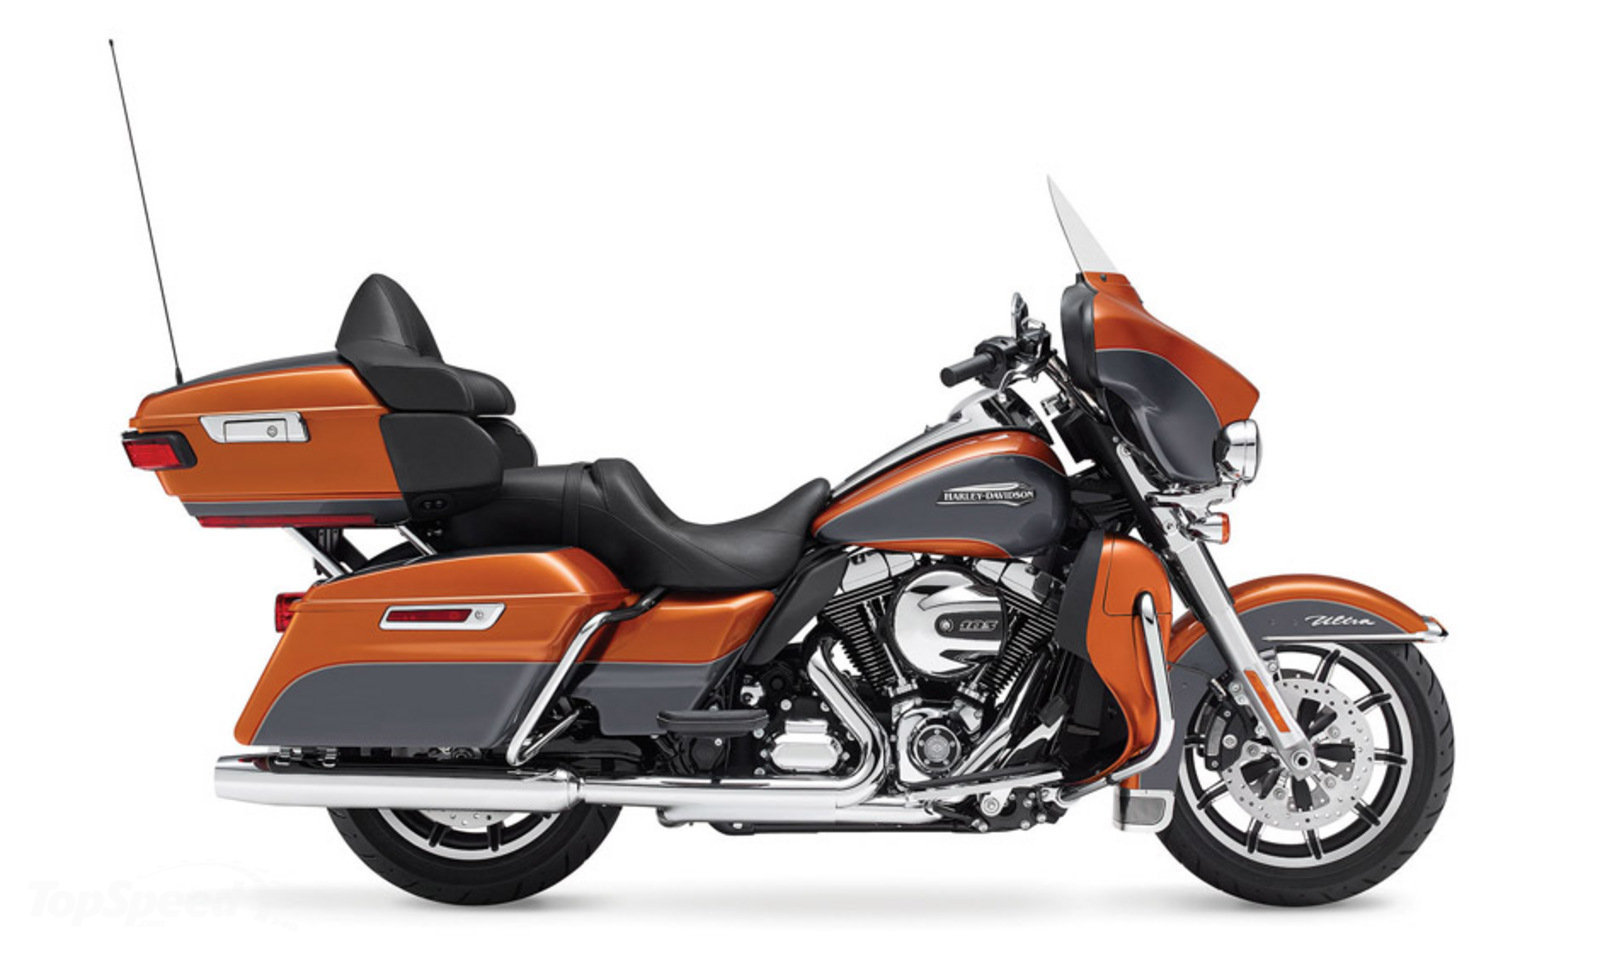 2015 Harley-Davidson Electra Glide Ultra Classic Review